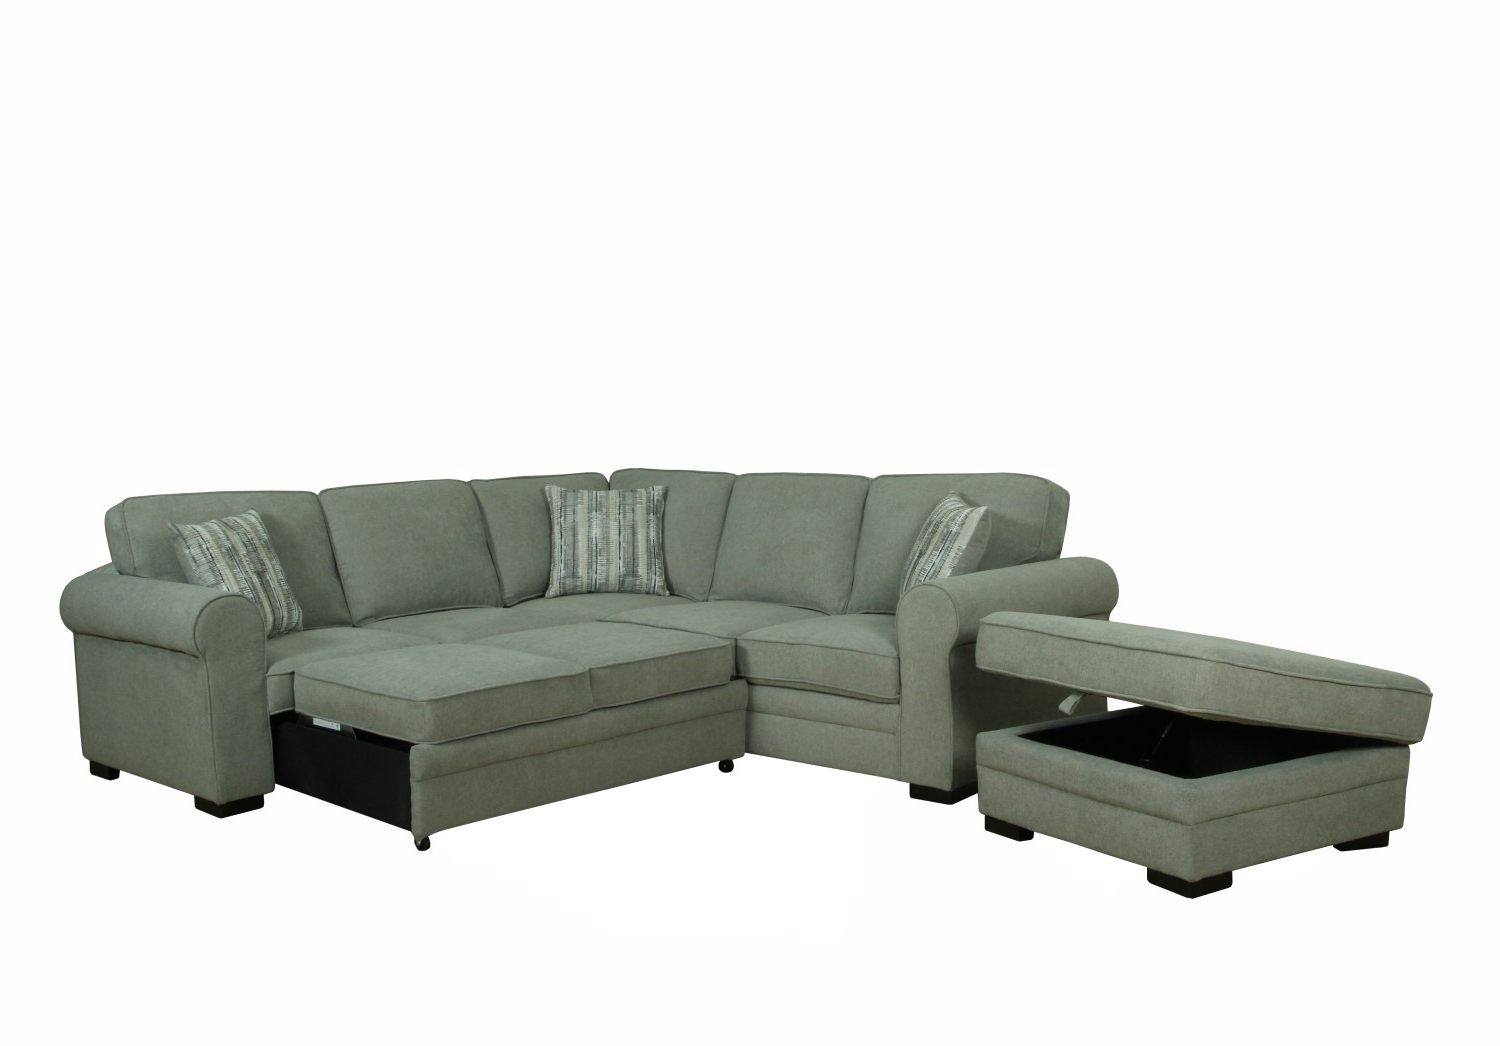 Abigail Sectional (View 11 of 20)